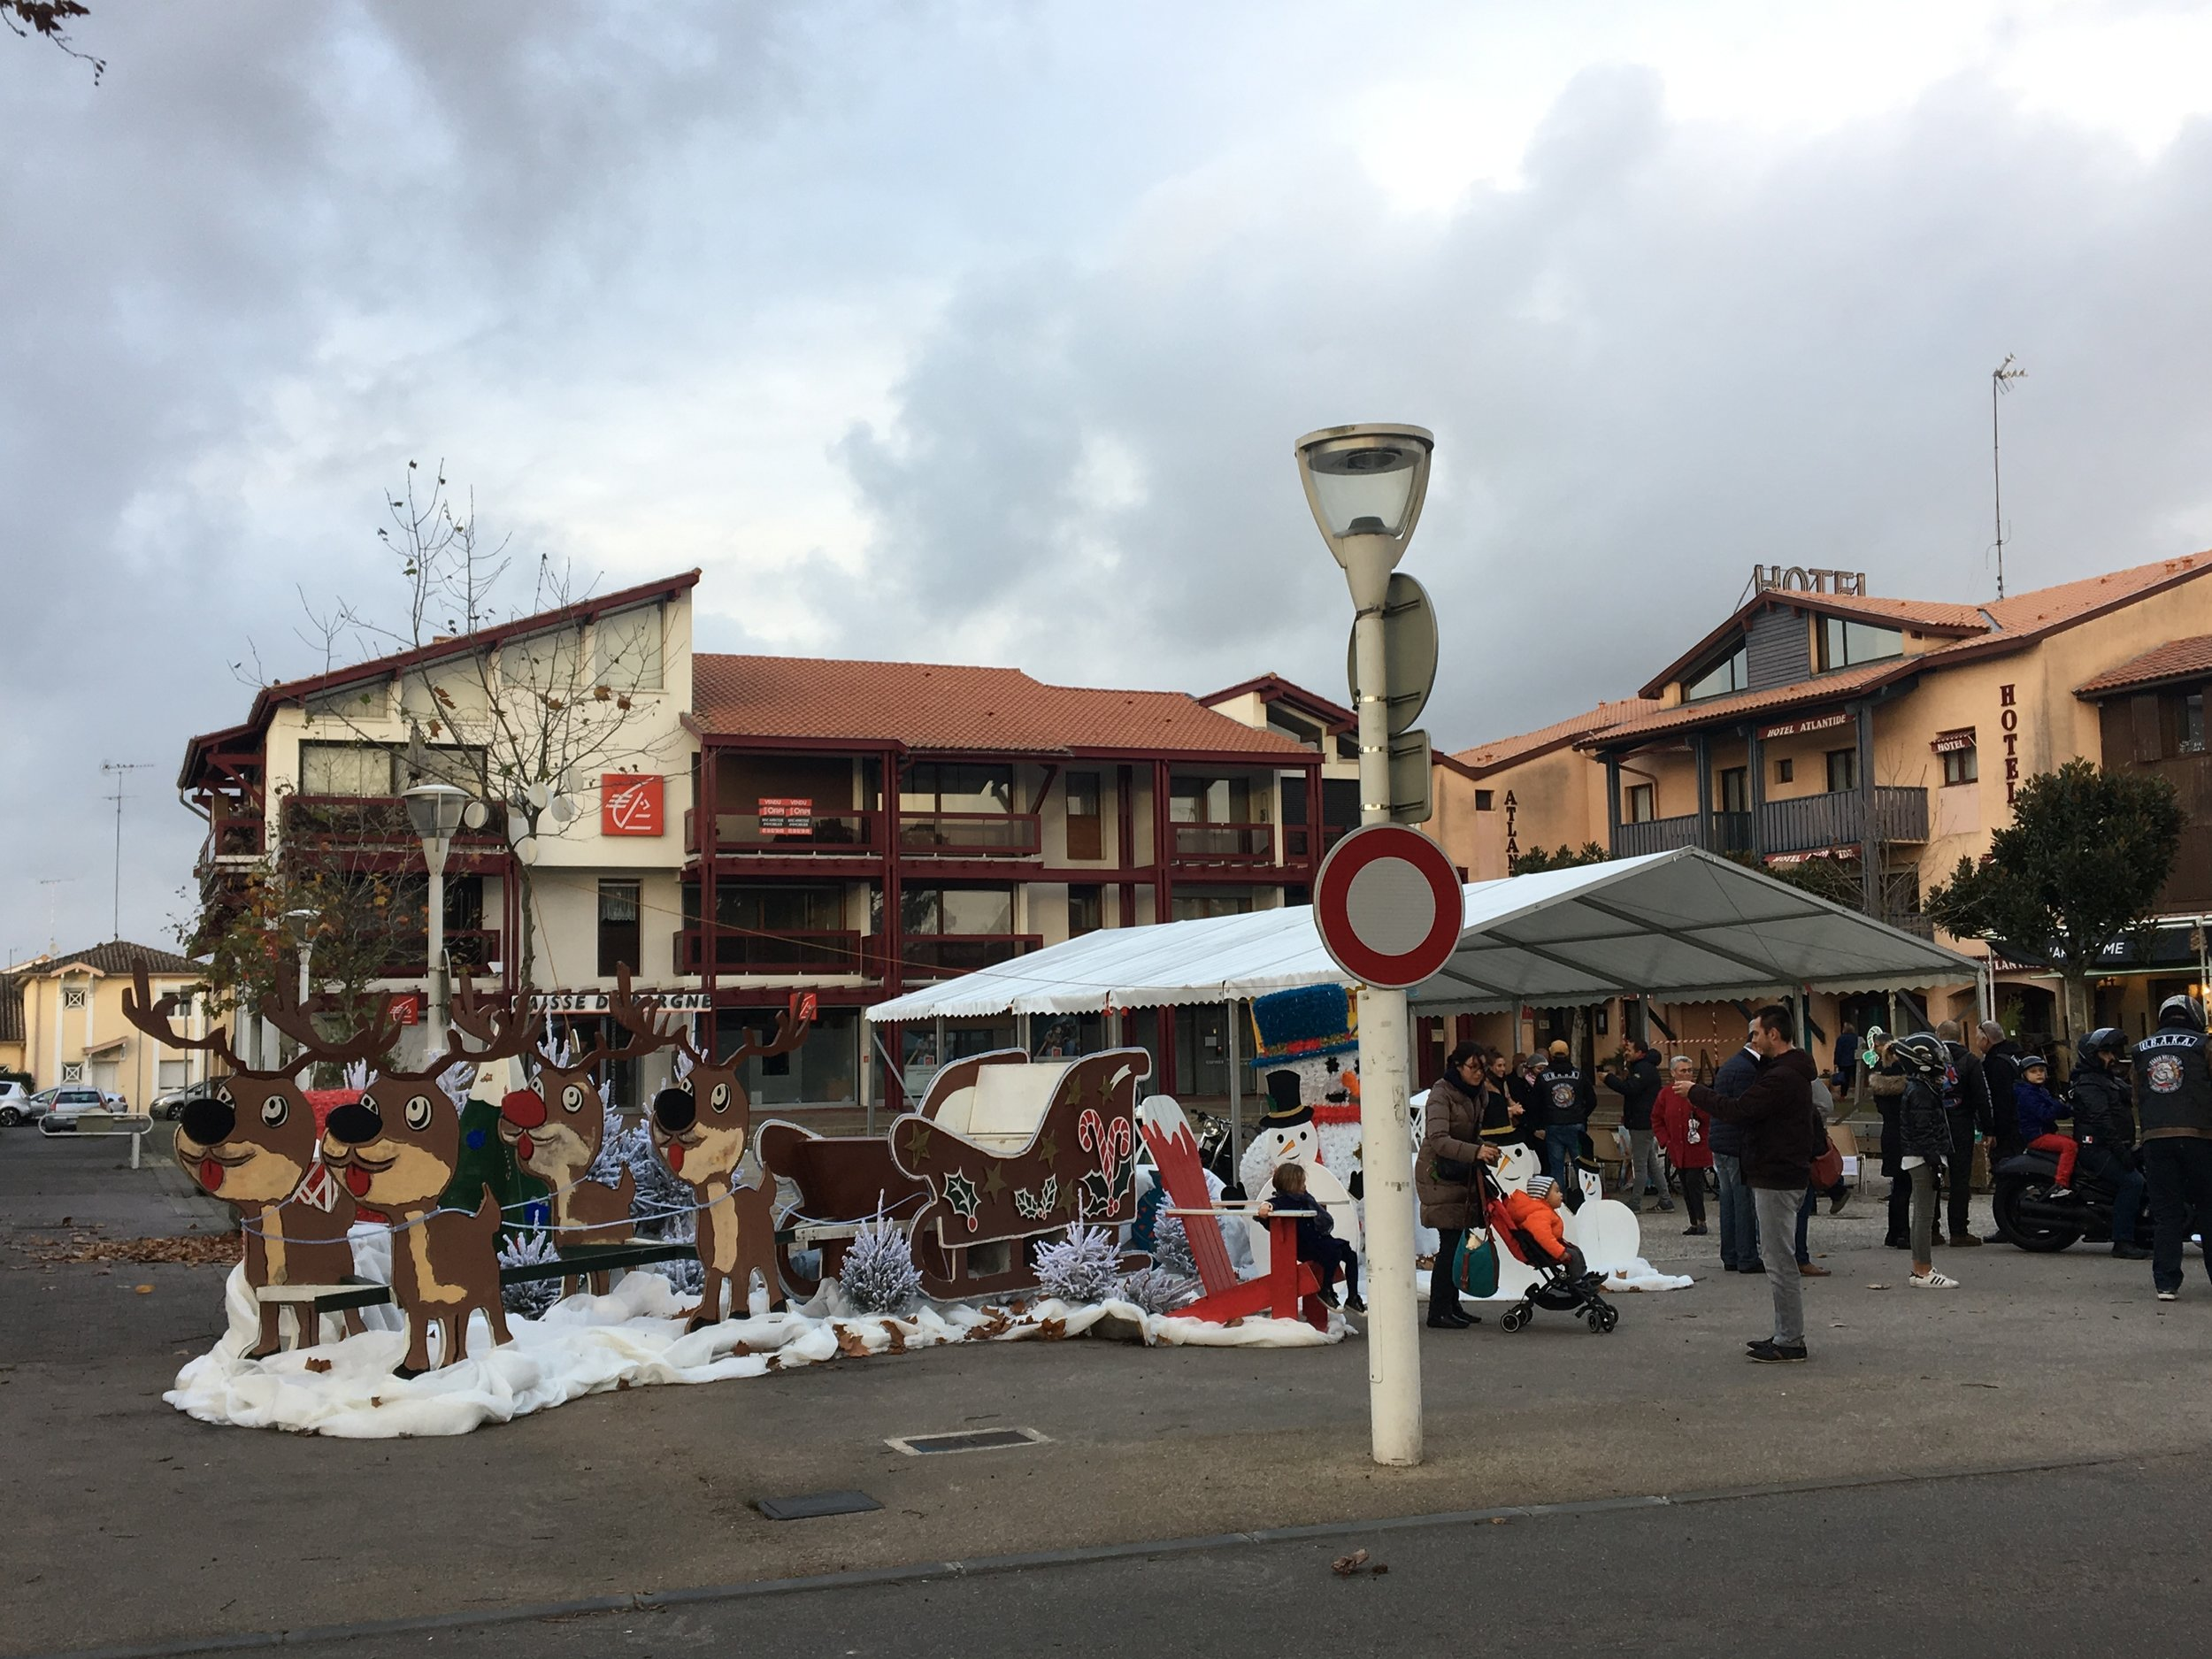 Decorations for the town Christmas market in the town square